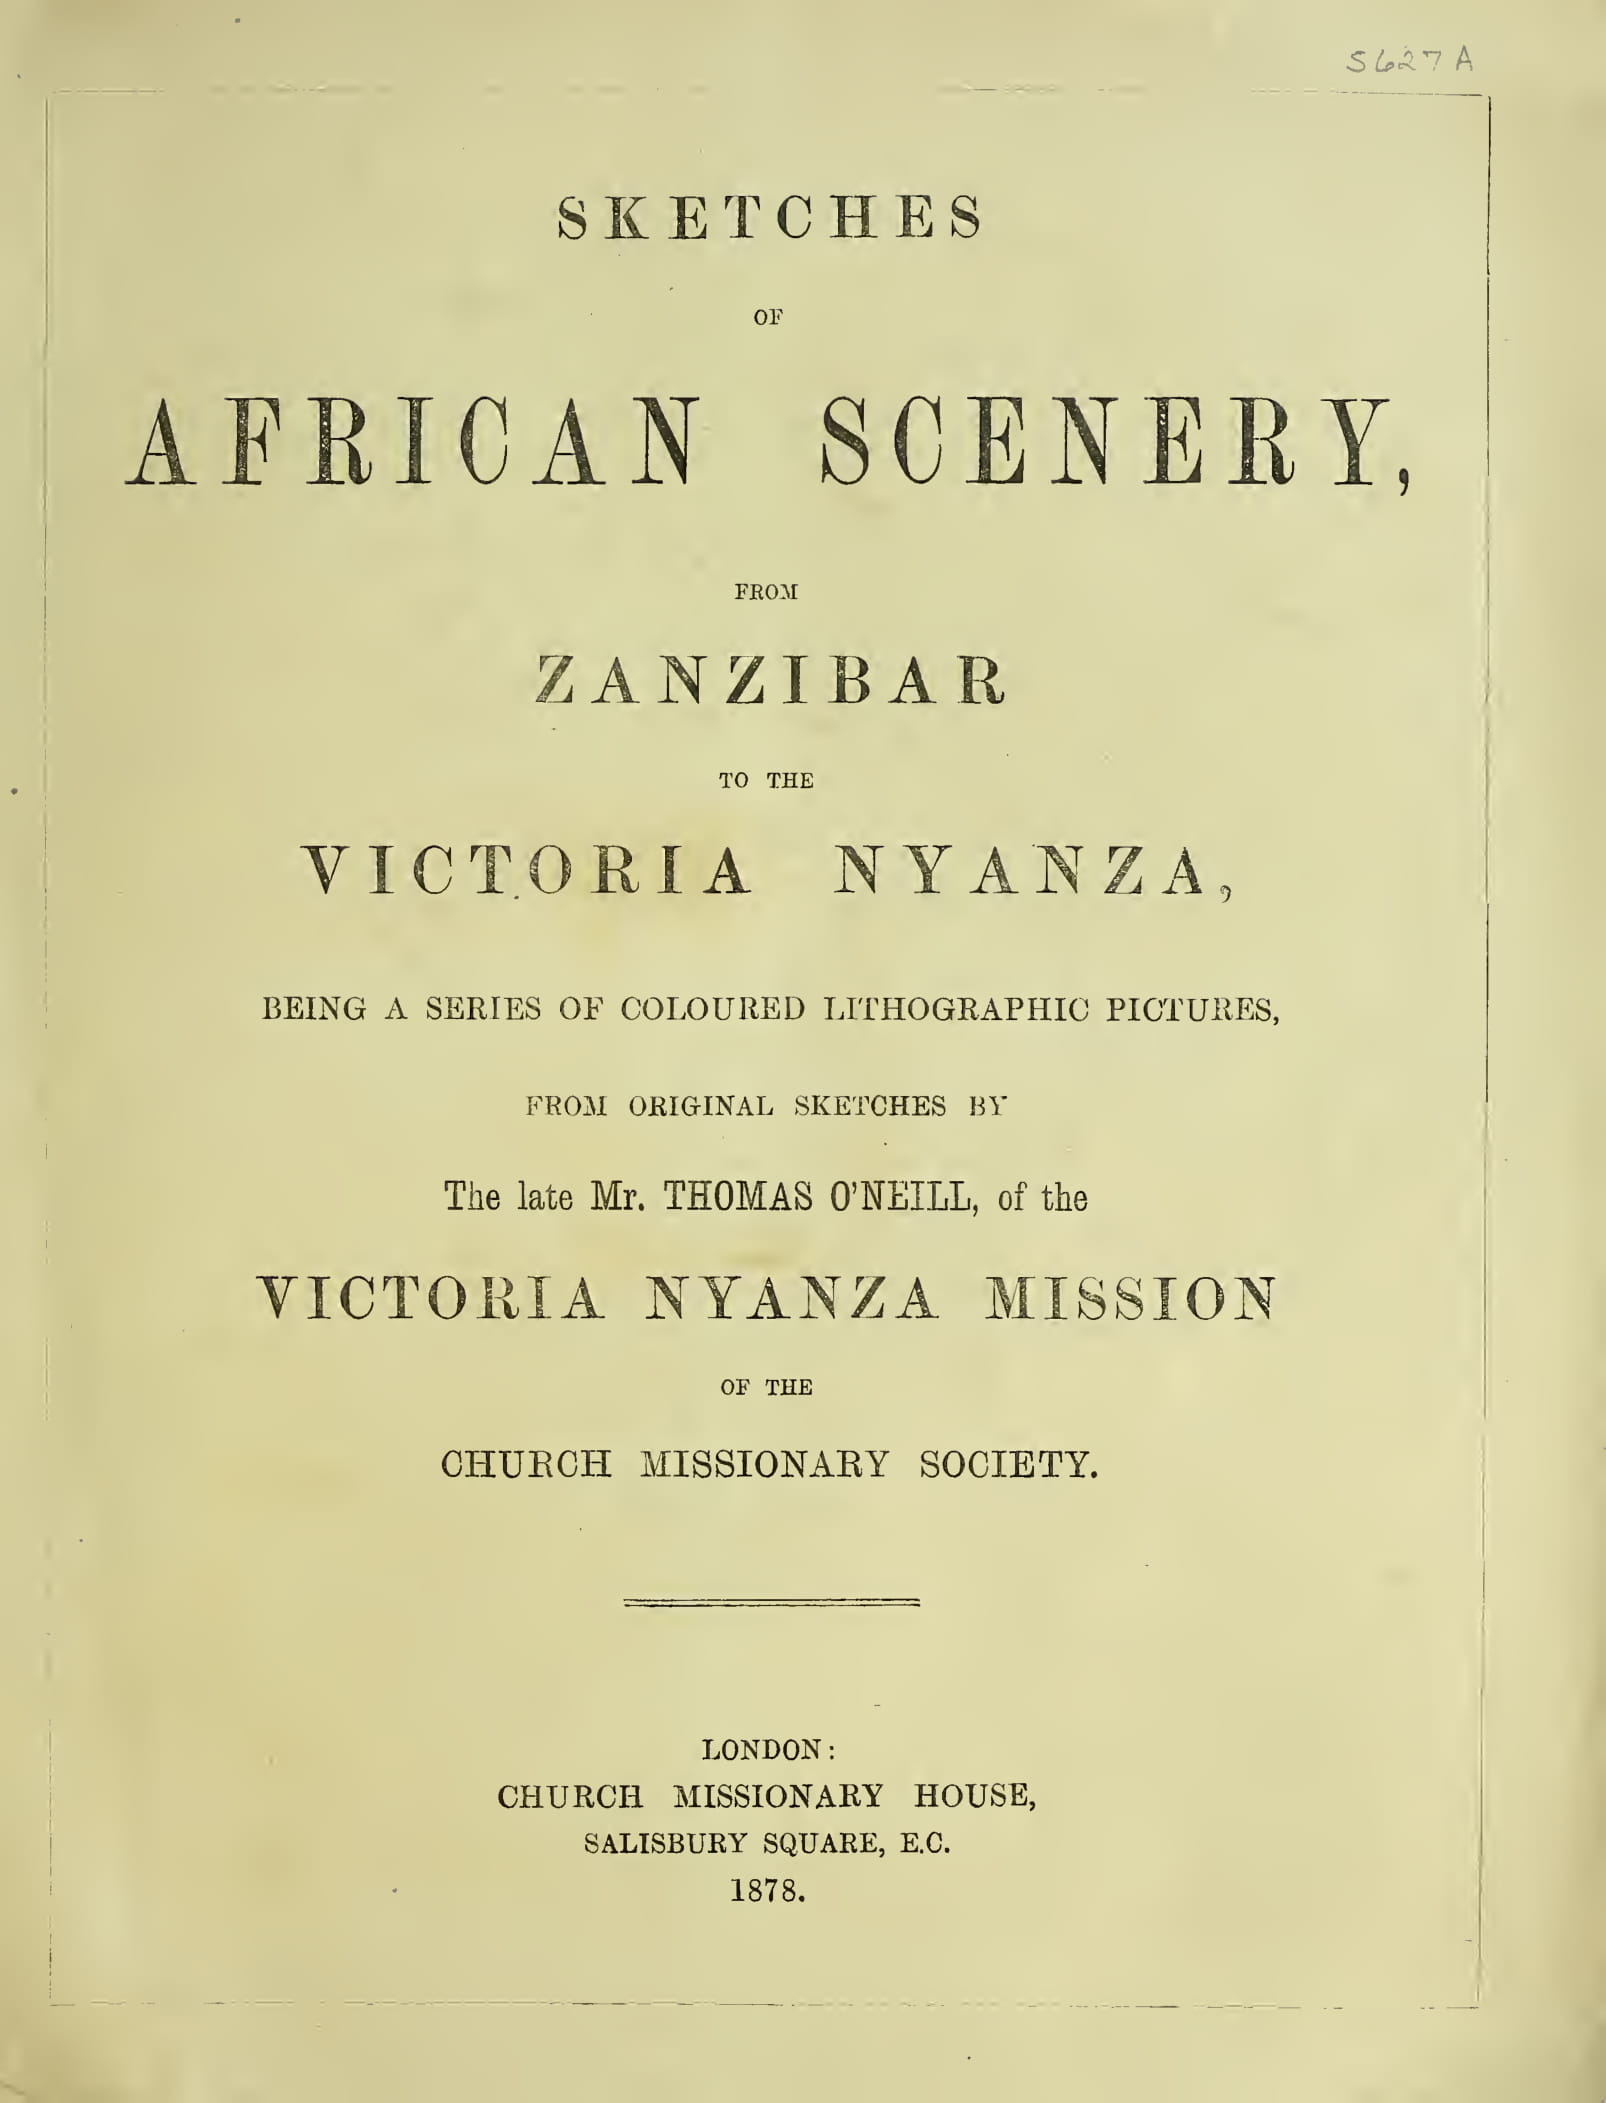 Biodiversity Heritage Library - Sketches of African Scenery